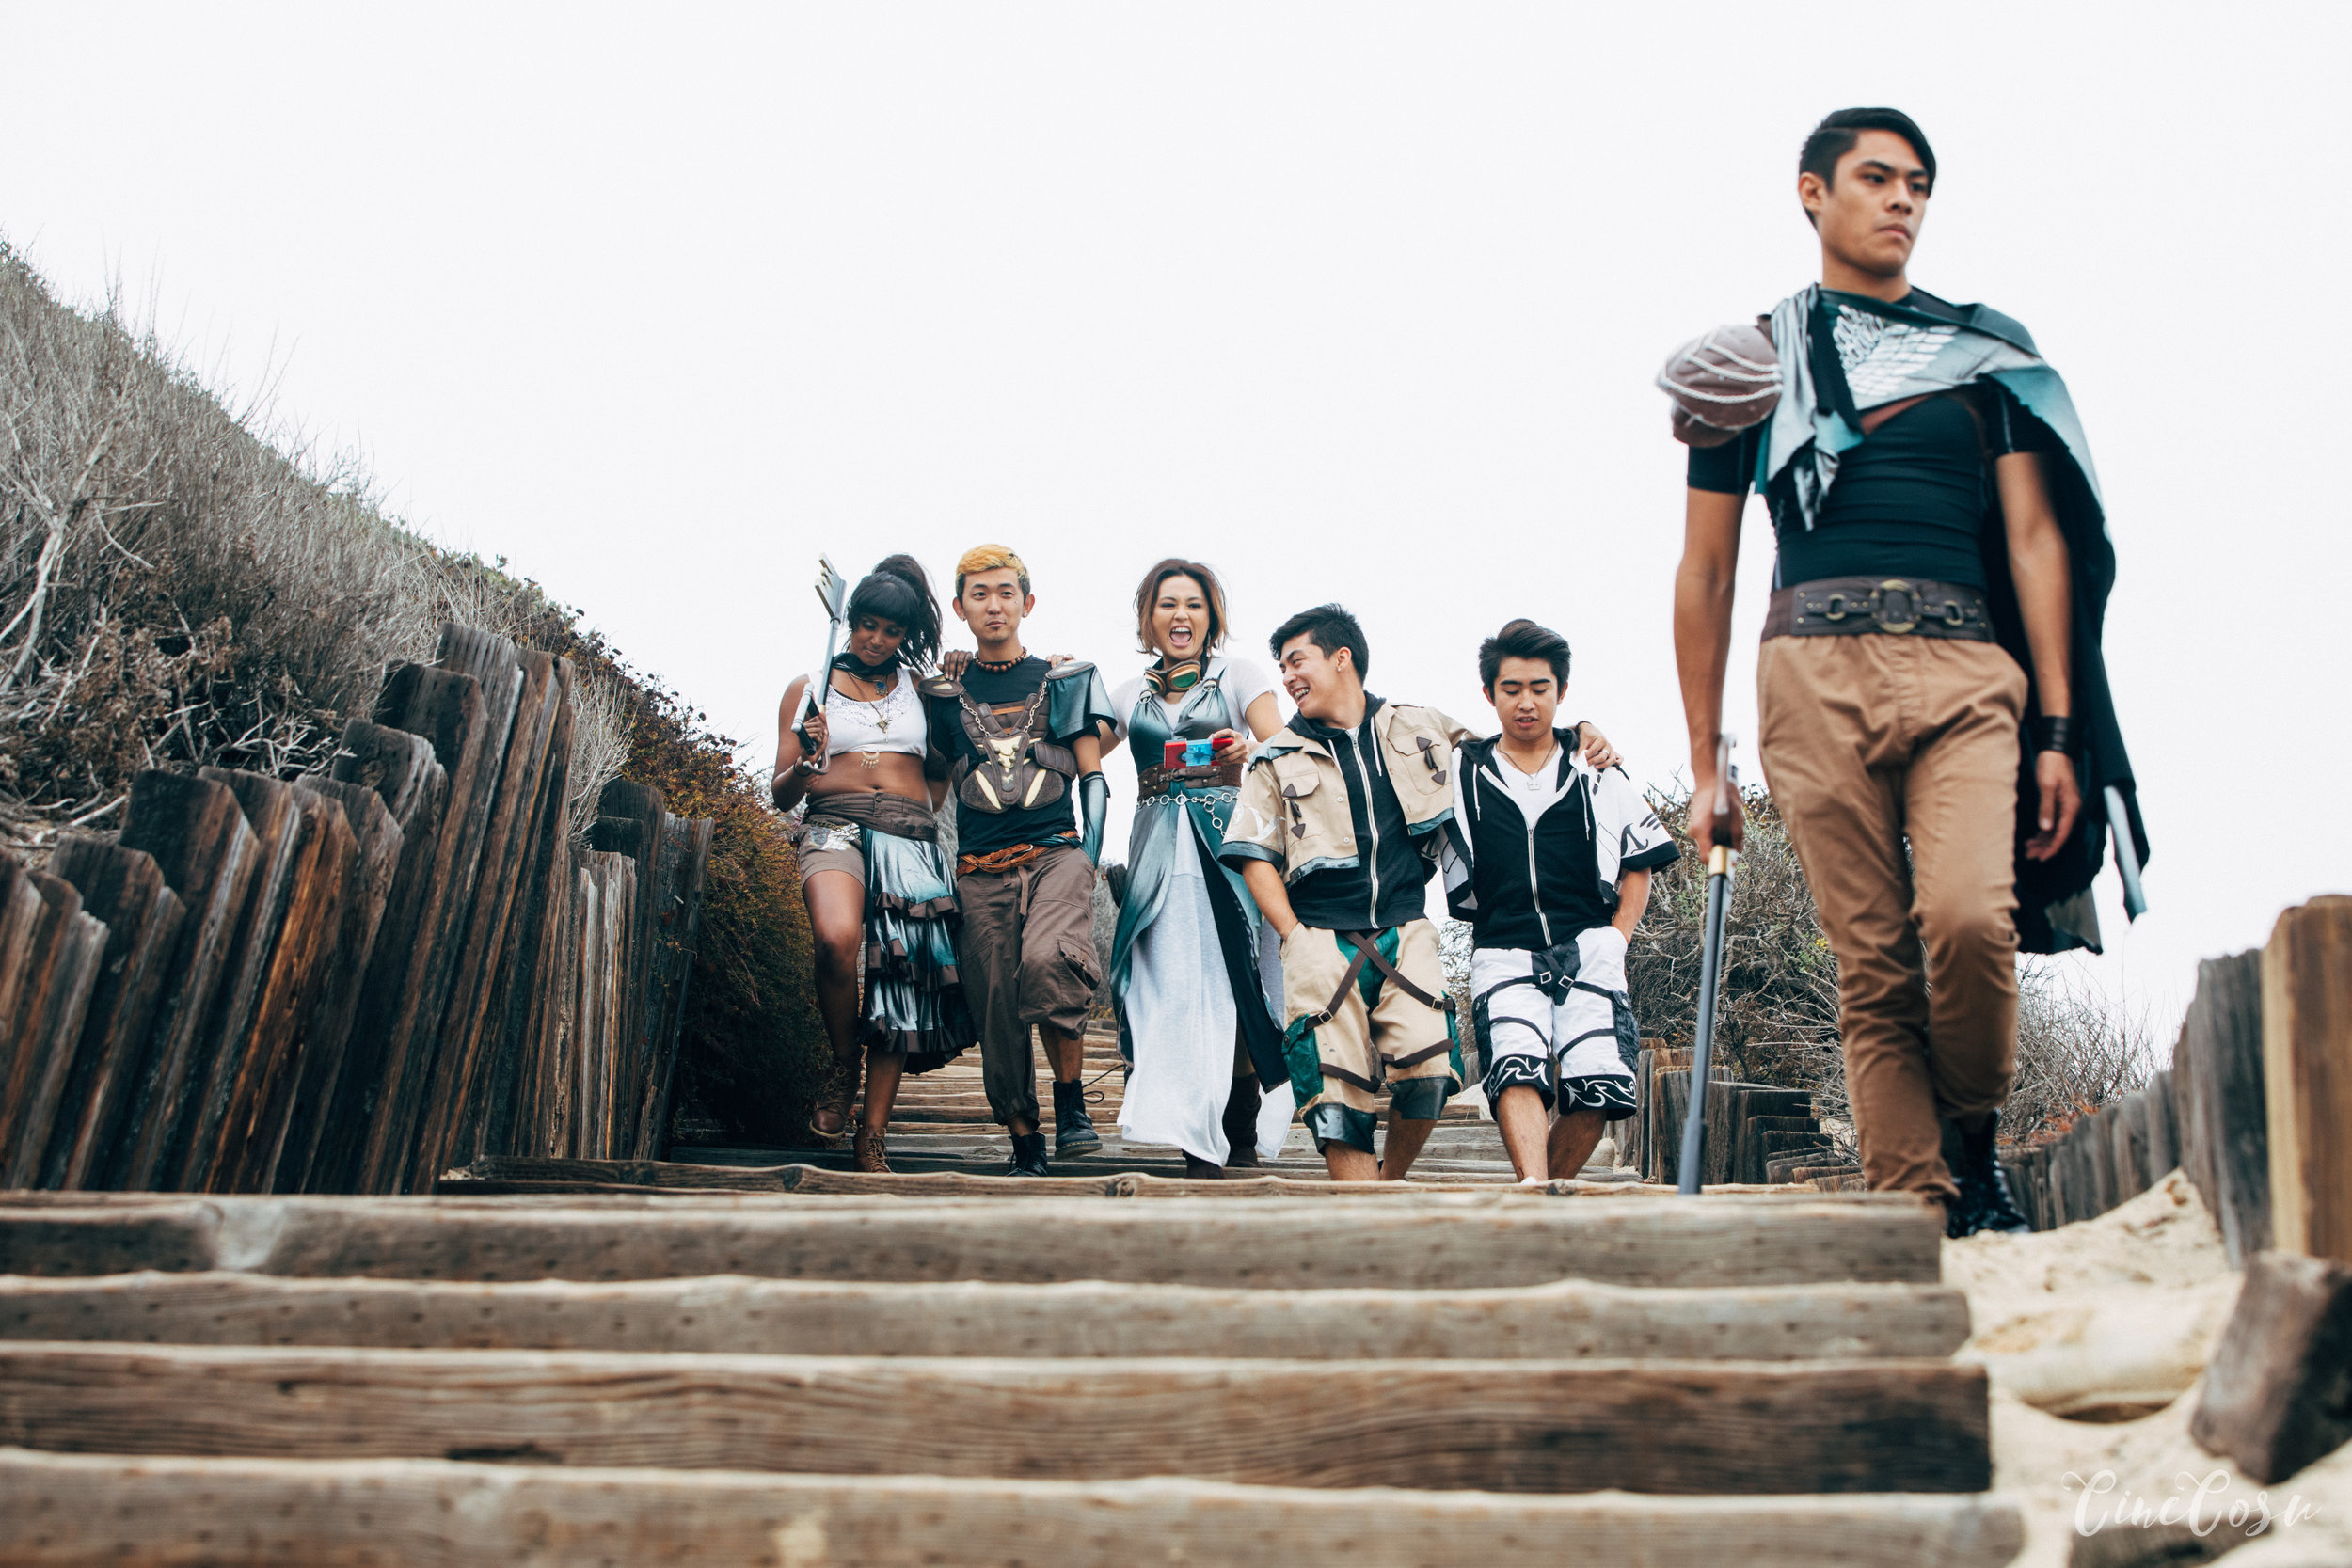 Survey-Corps-Dance-Crew-Into-The-Kingdom-Cinecosu-3-RSWM.jpg